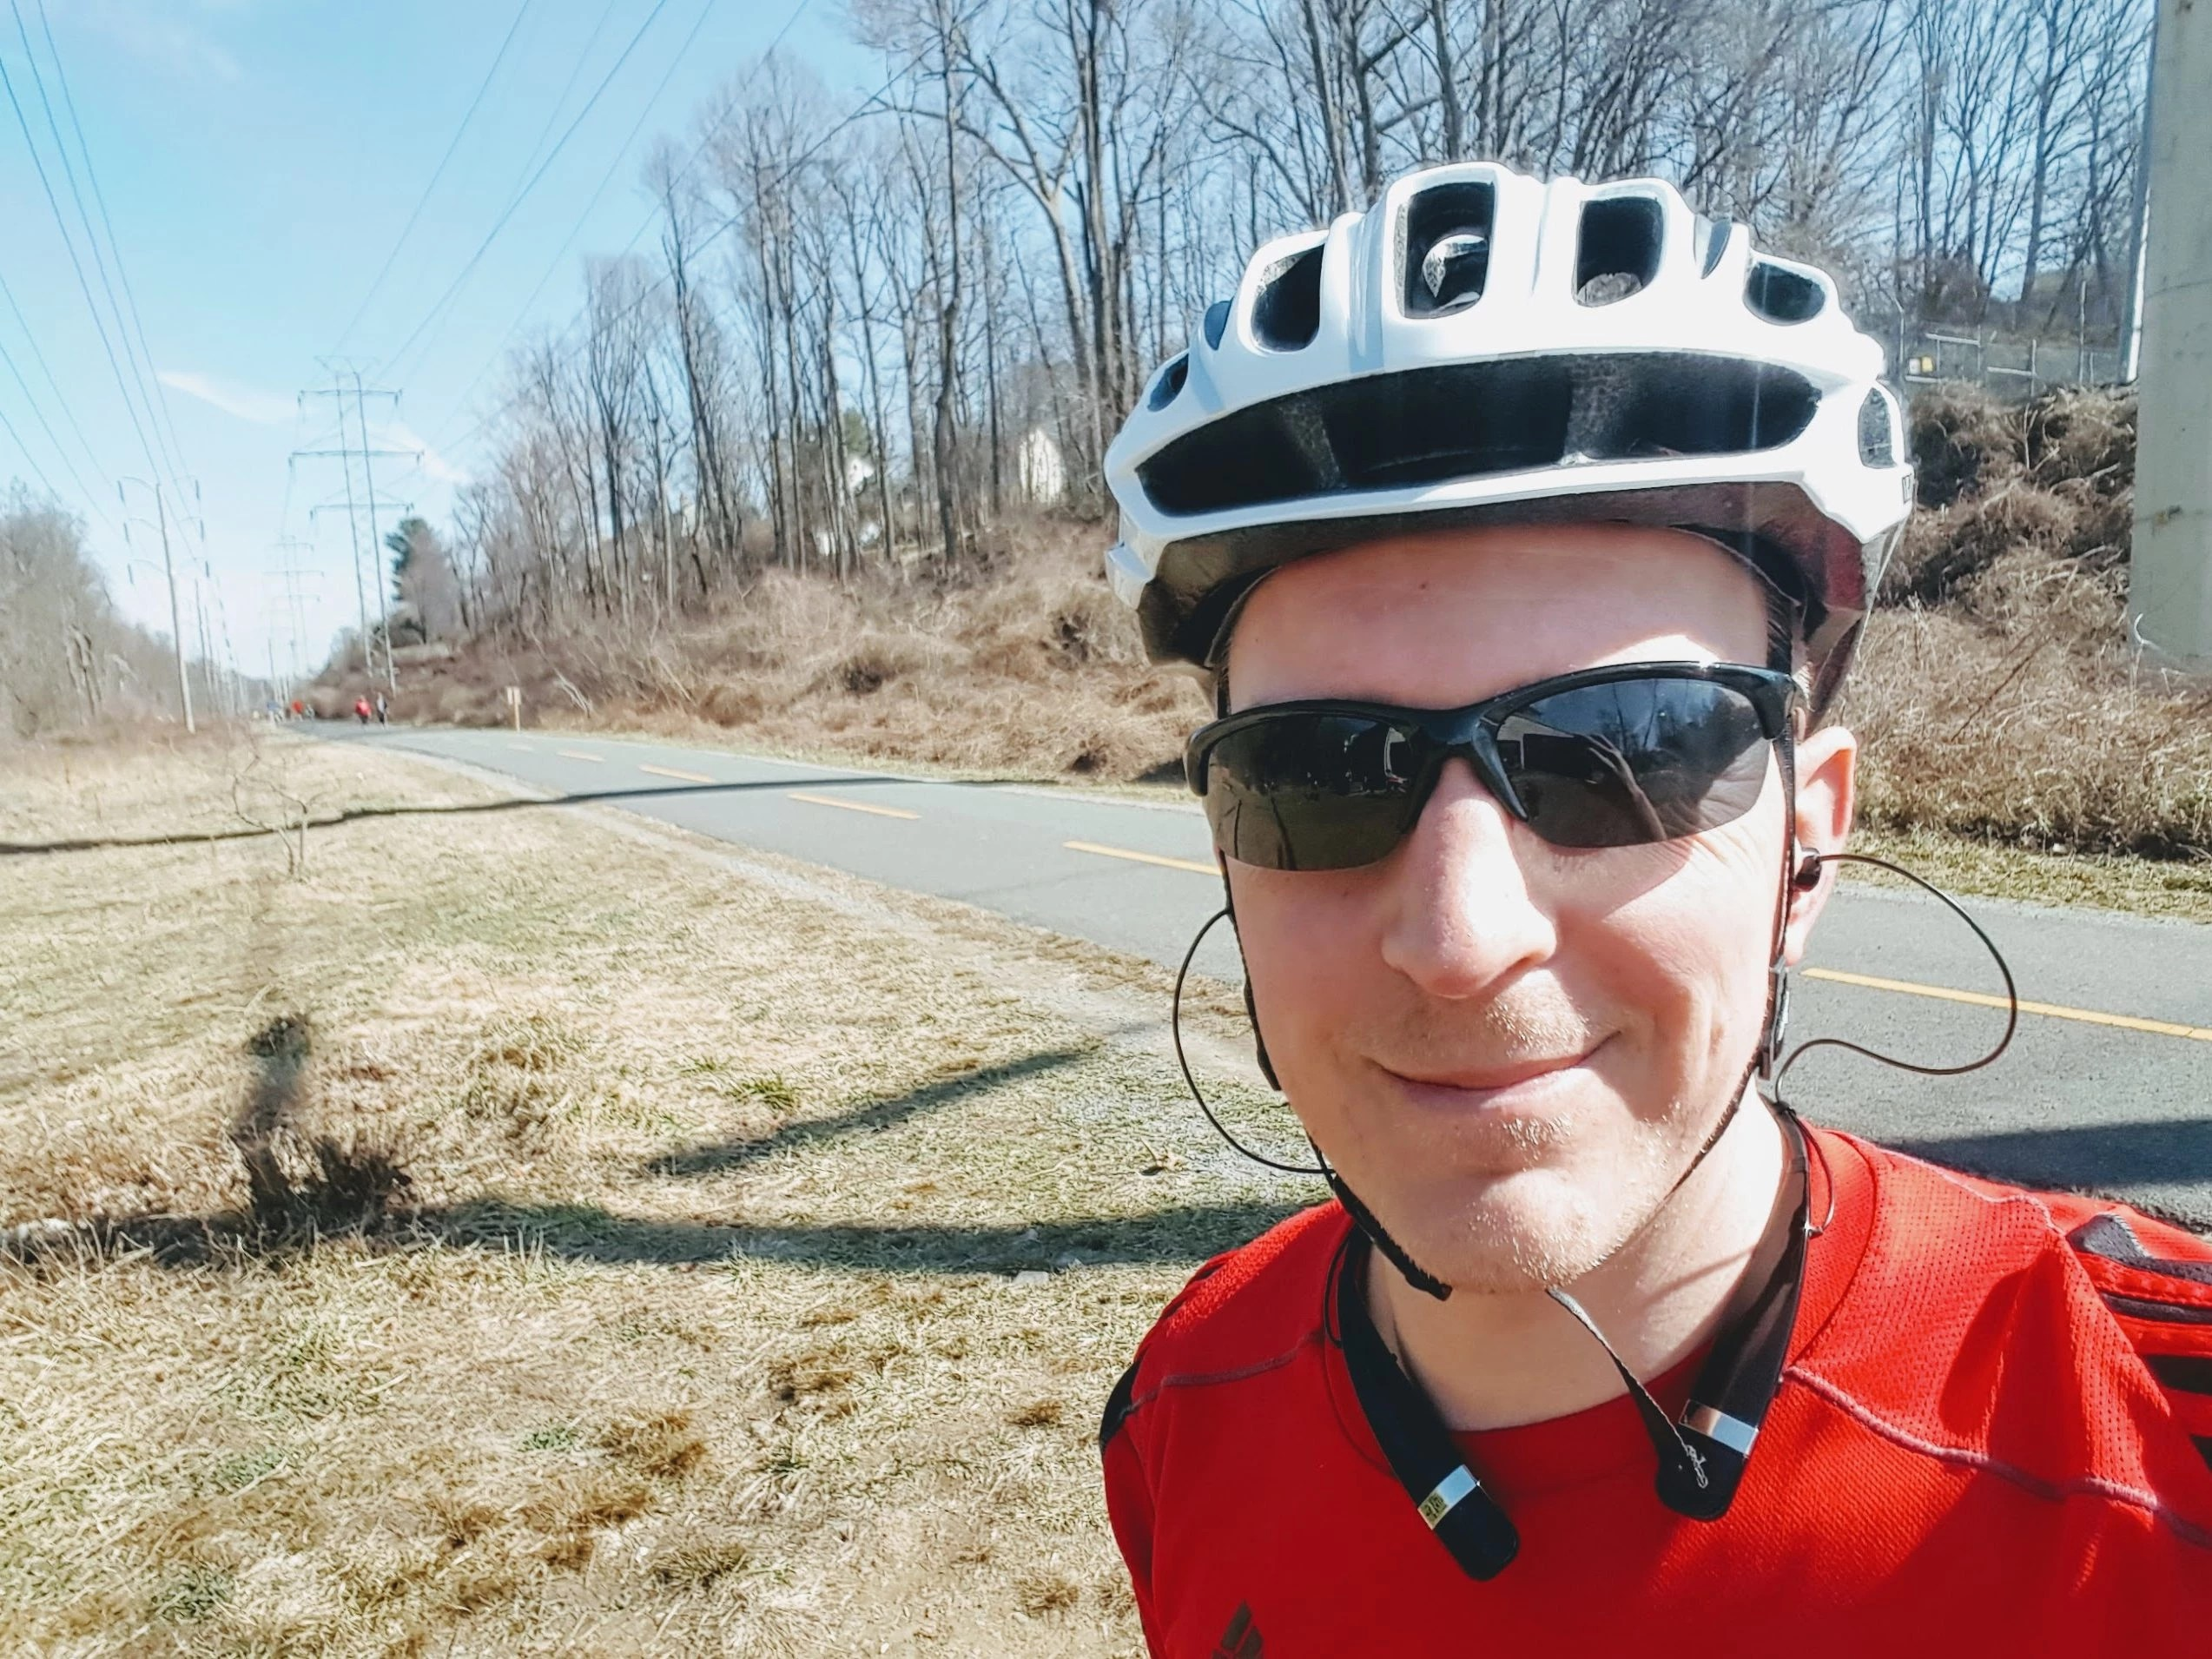 An avid recreational cyclist, especially to breweries